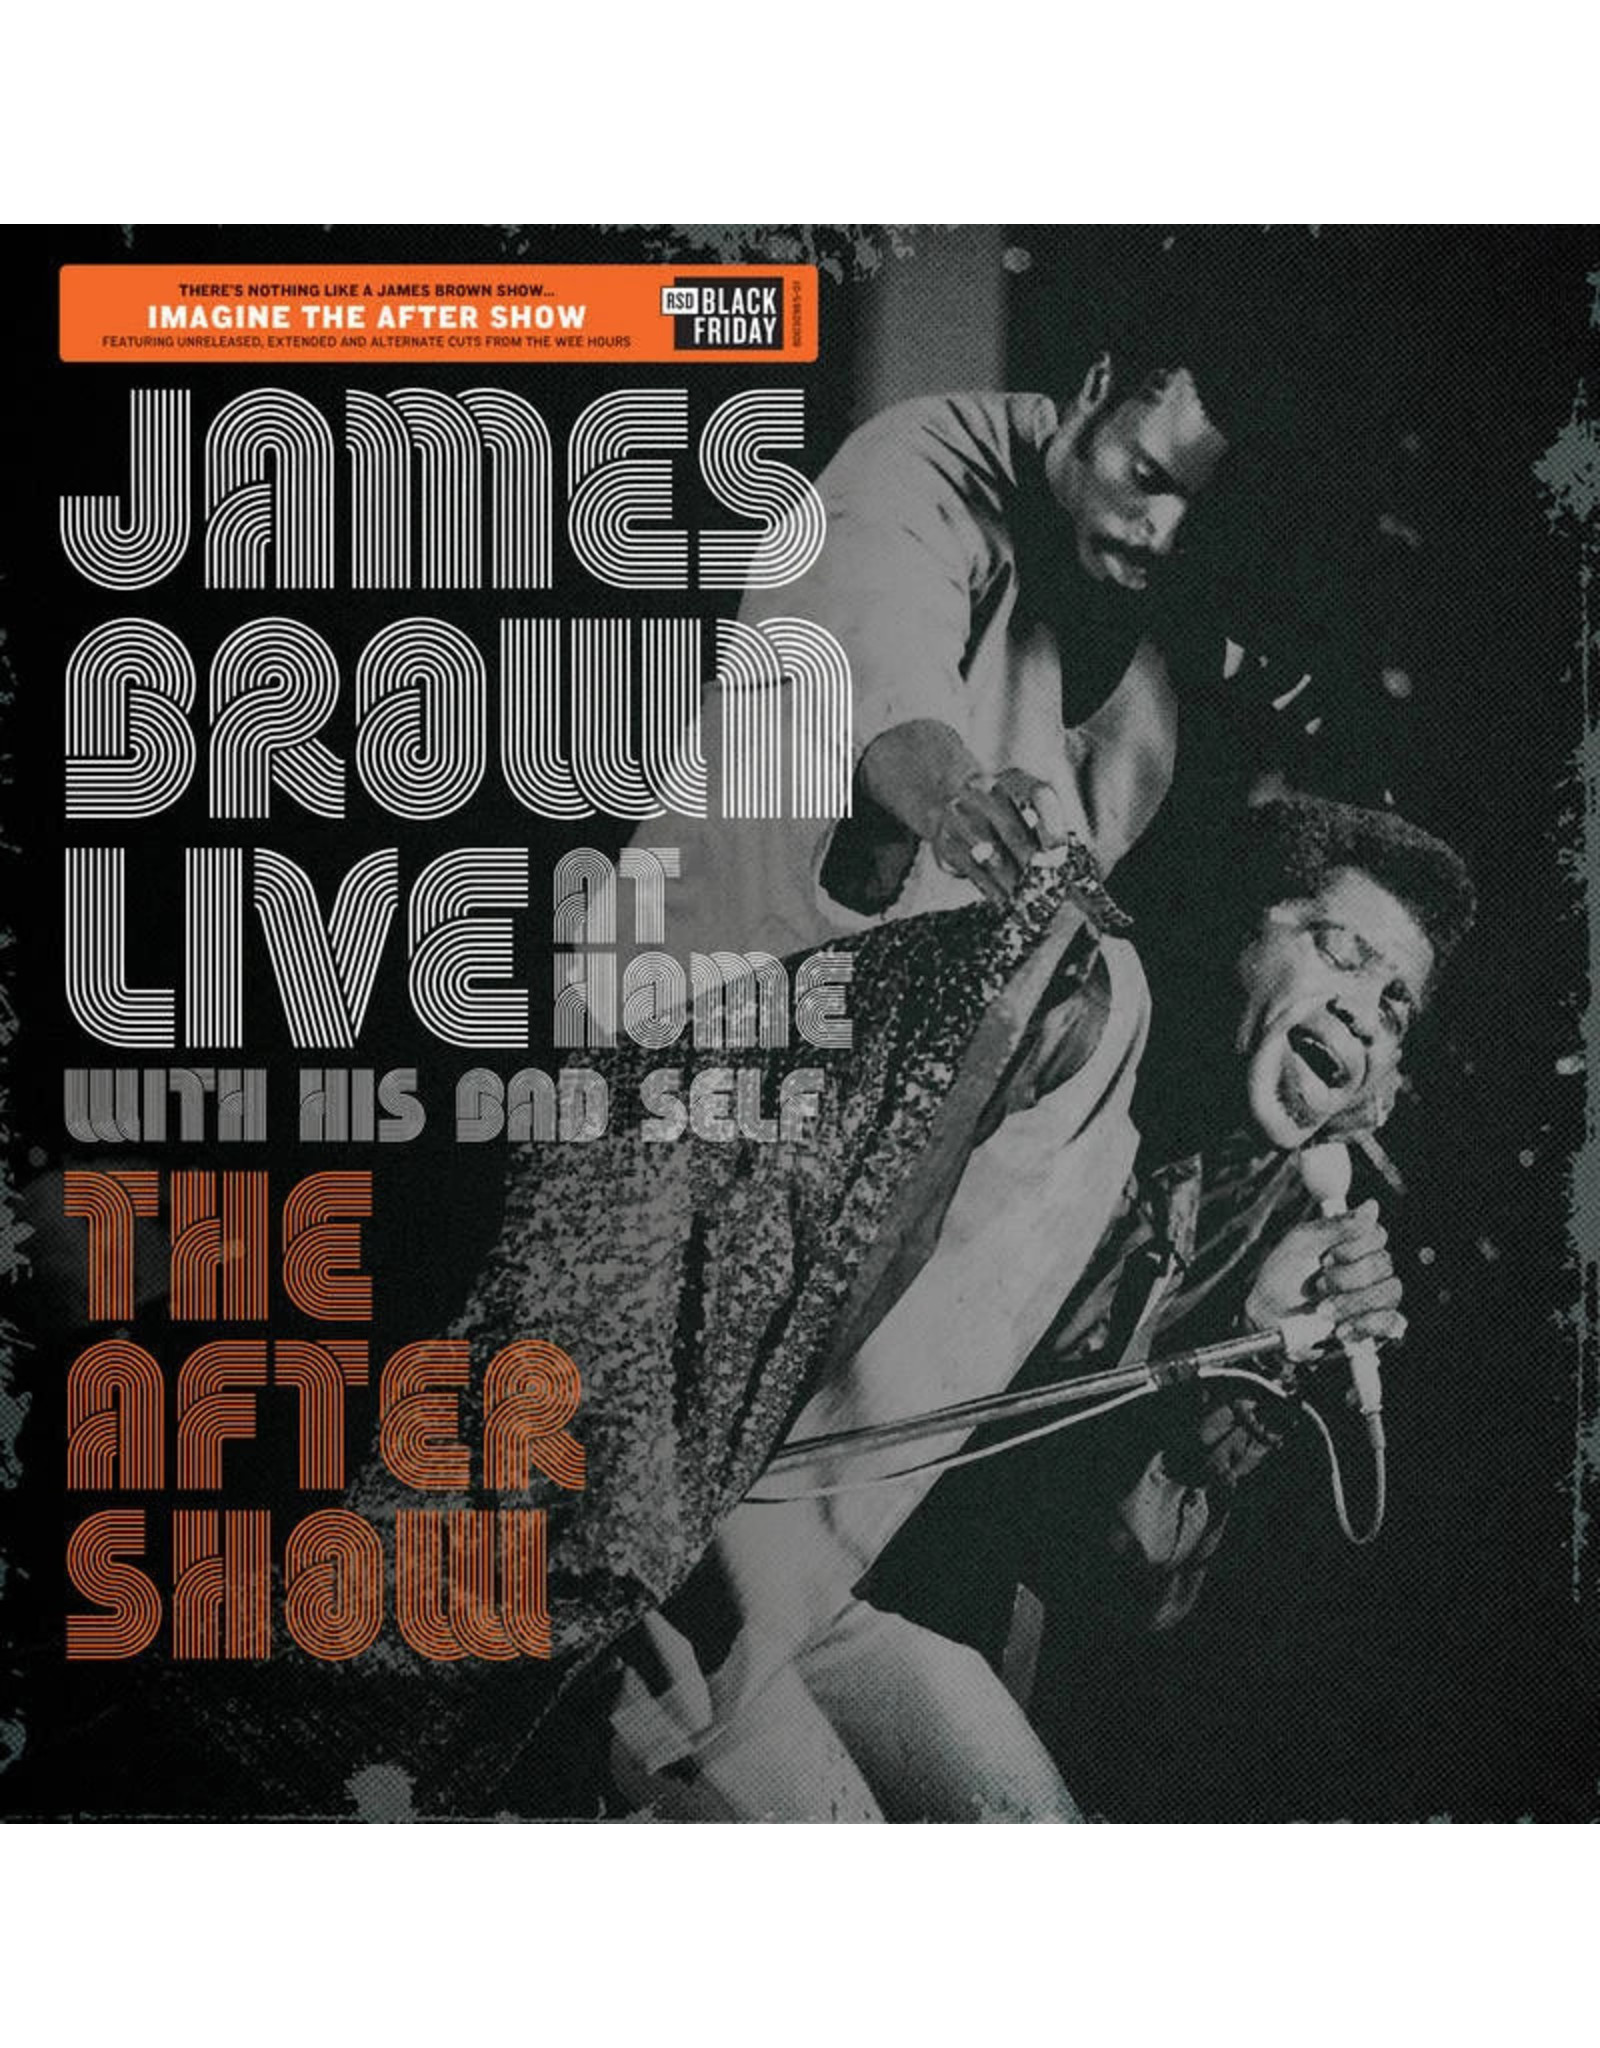 James Brown - Live at Home with His Bad Self: The After Show LP